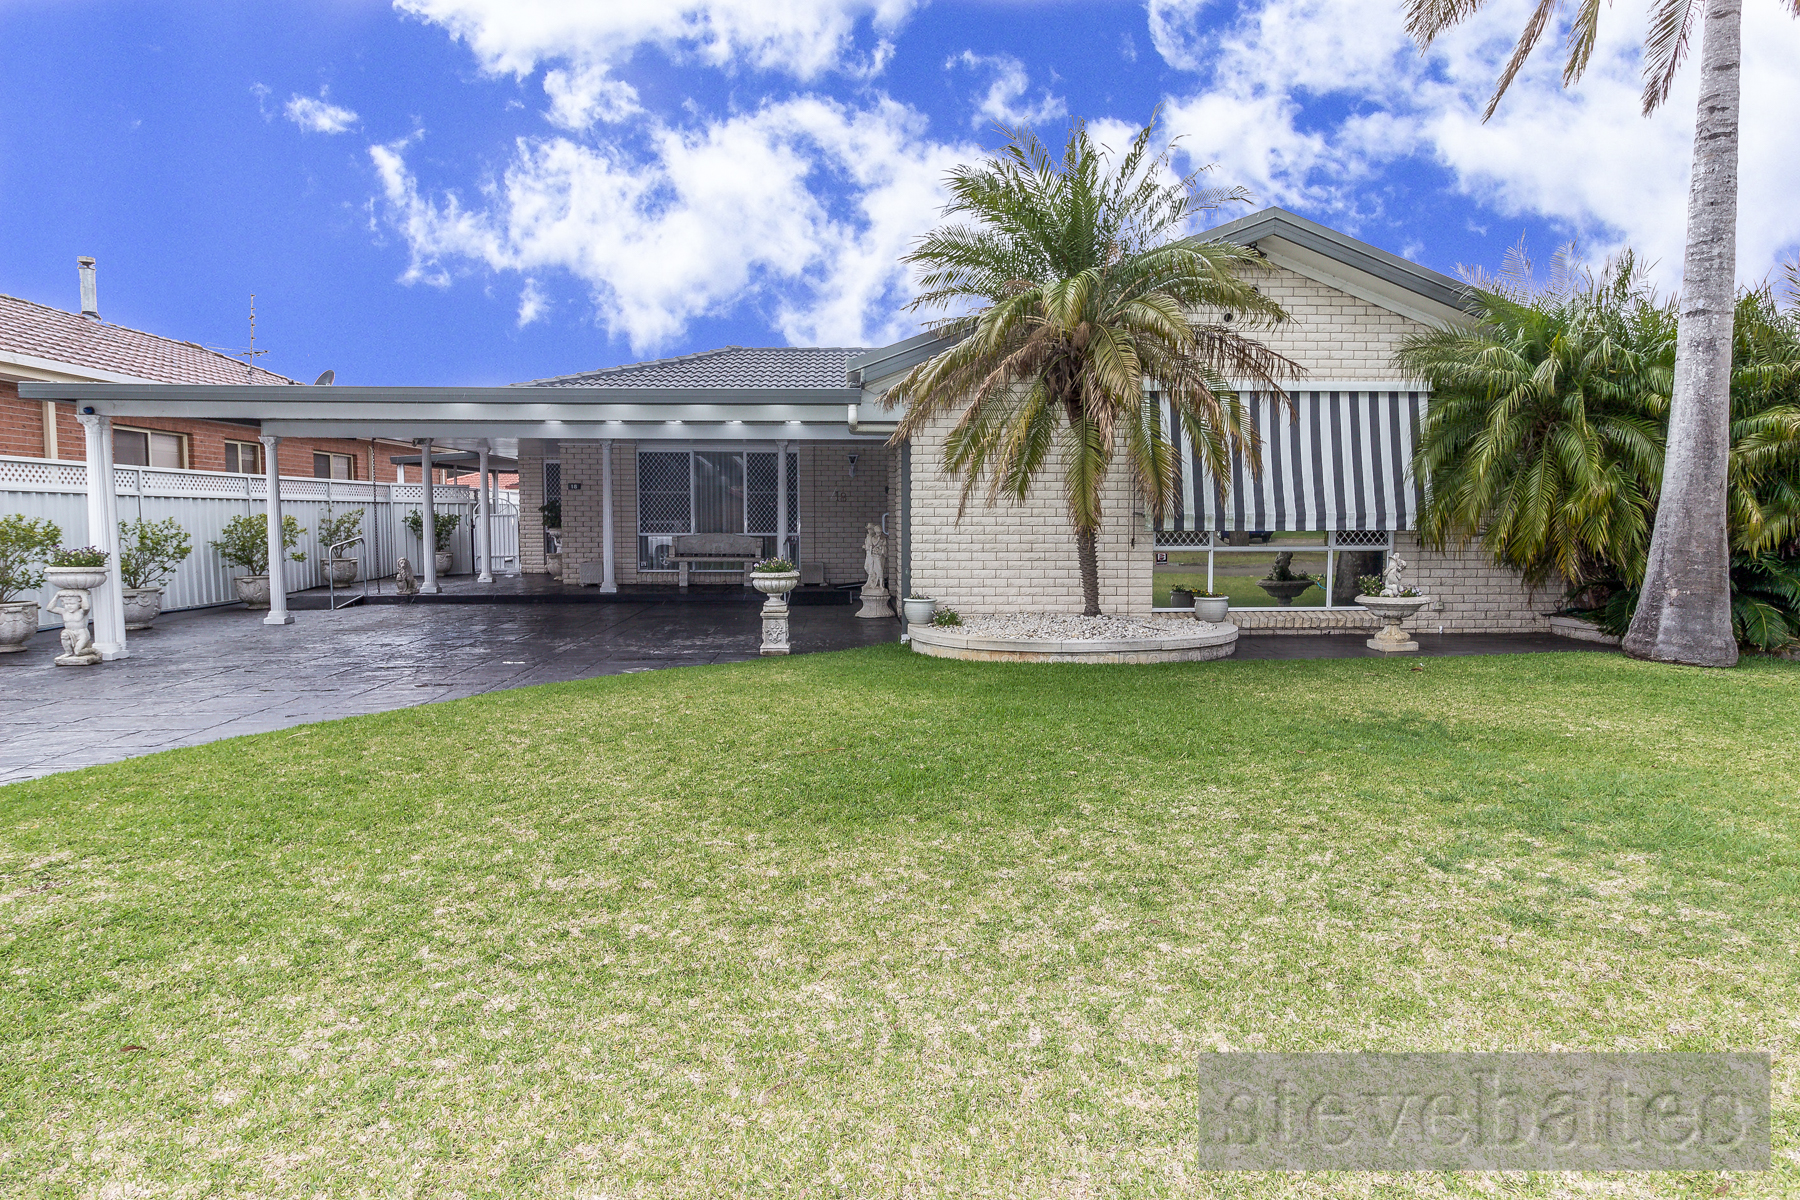 18 Purcell Street RAYMOND TERRACE